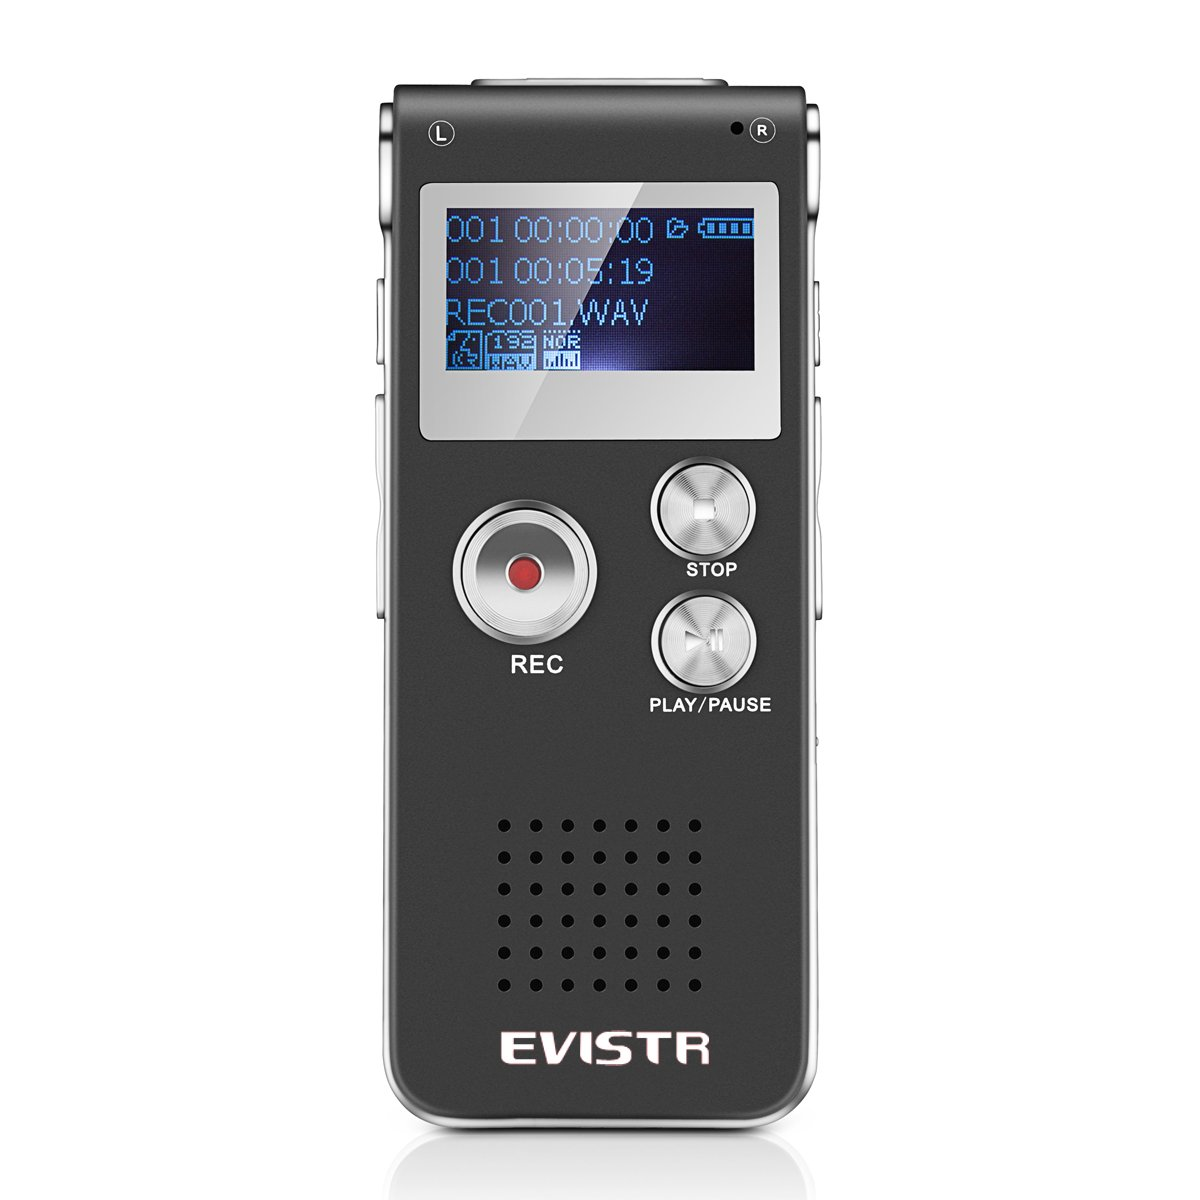 Registratore Vocale Portatile Nero 8GB 650 Ore di Registrazione Audio Digitale con Lettore MP3 by Evistr L169